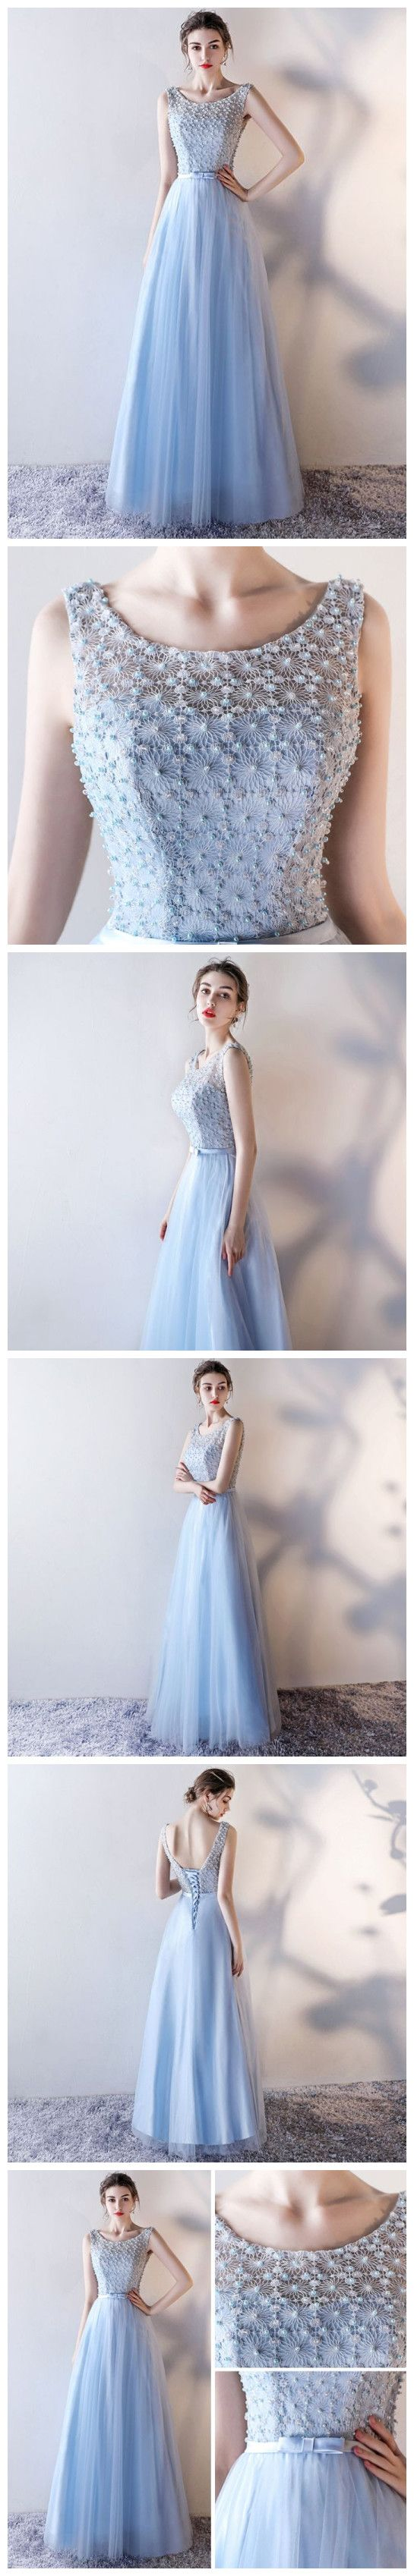 CHIC A-LINE SCOOP MODEST LIGHT SKY BLUE BEADING LONG PROM DRESS EVENING DRESS AM514  #aline #bridesmaid dress #prom dress #appliques #fashion #style #art #long #prom #party #beauty #chic #modest #love #bridal